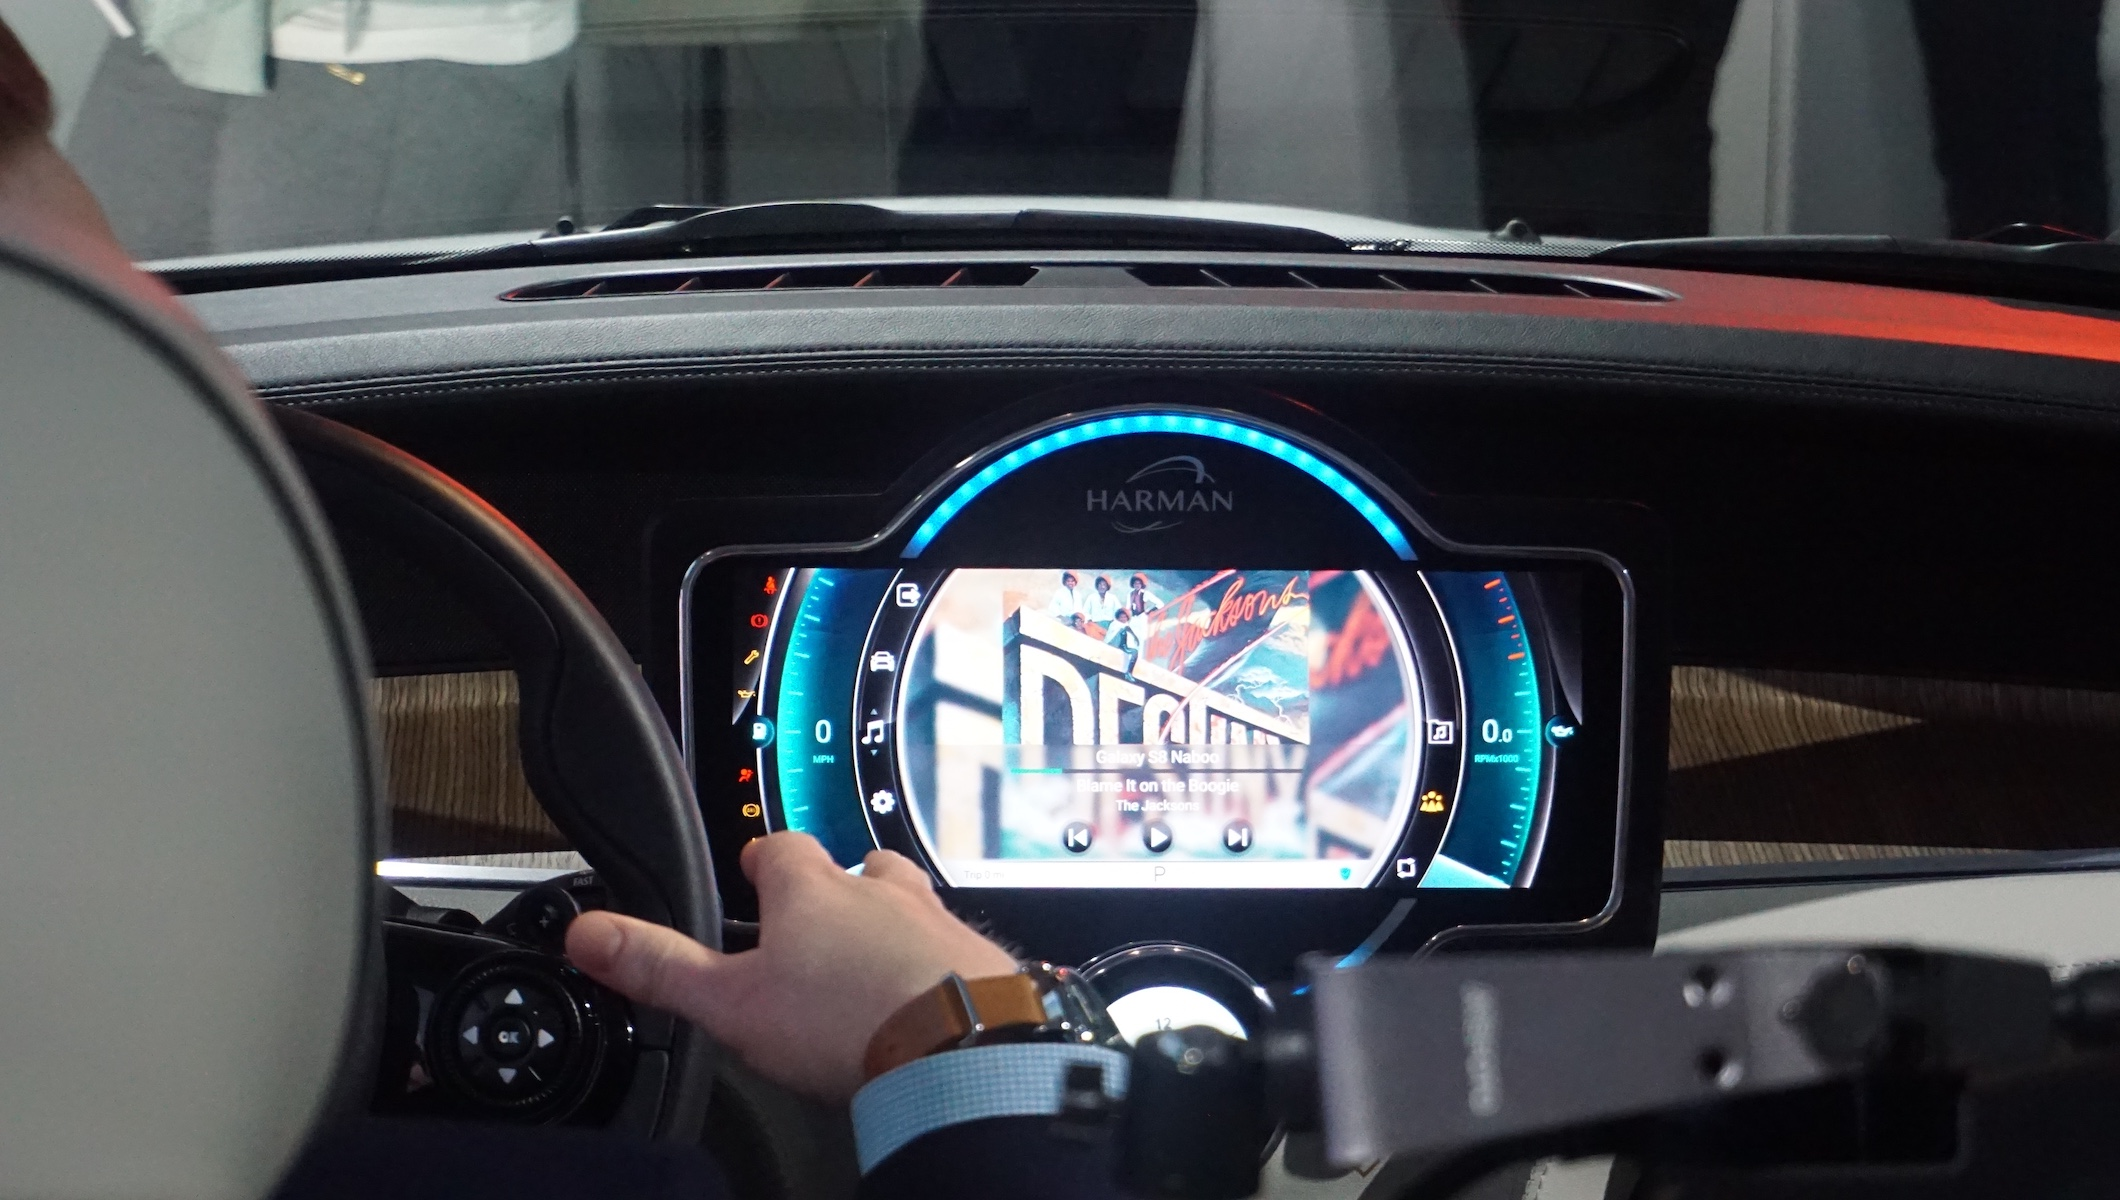 [CES 2018] Harman presenta le ultime novità tecnologiche in tema di automotive thumbnail